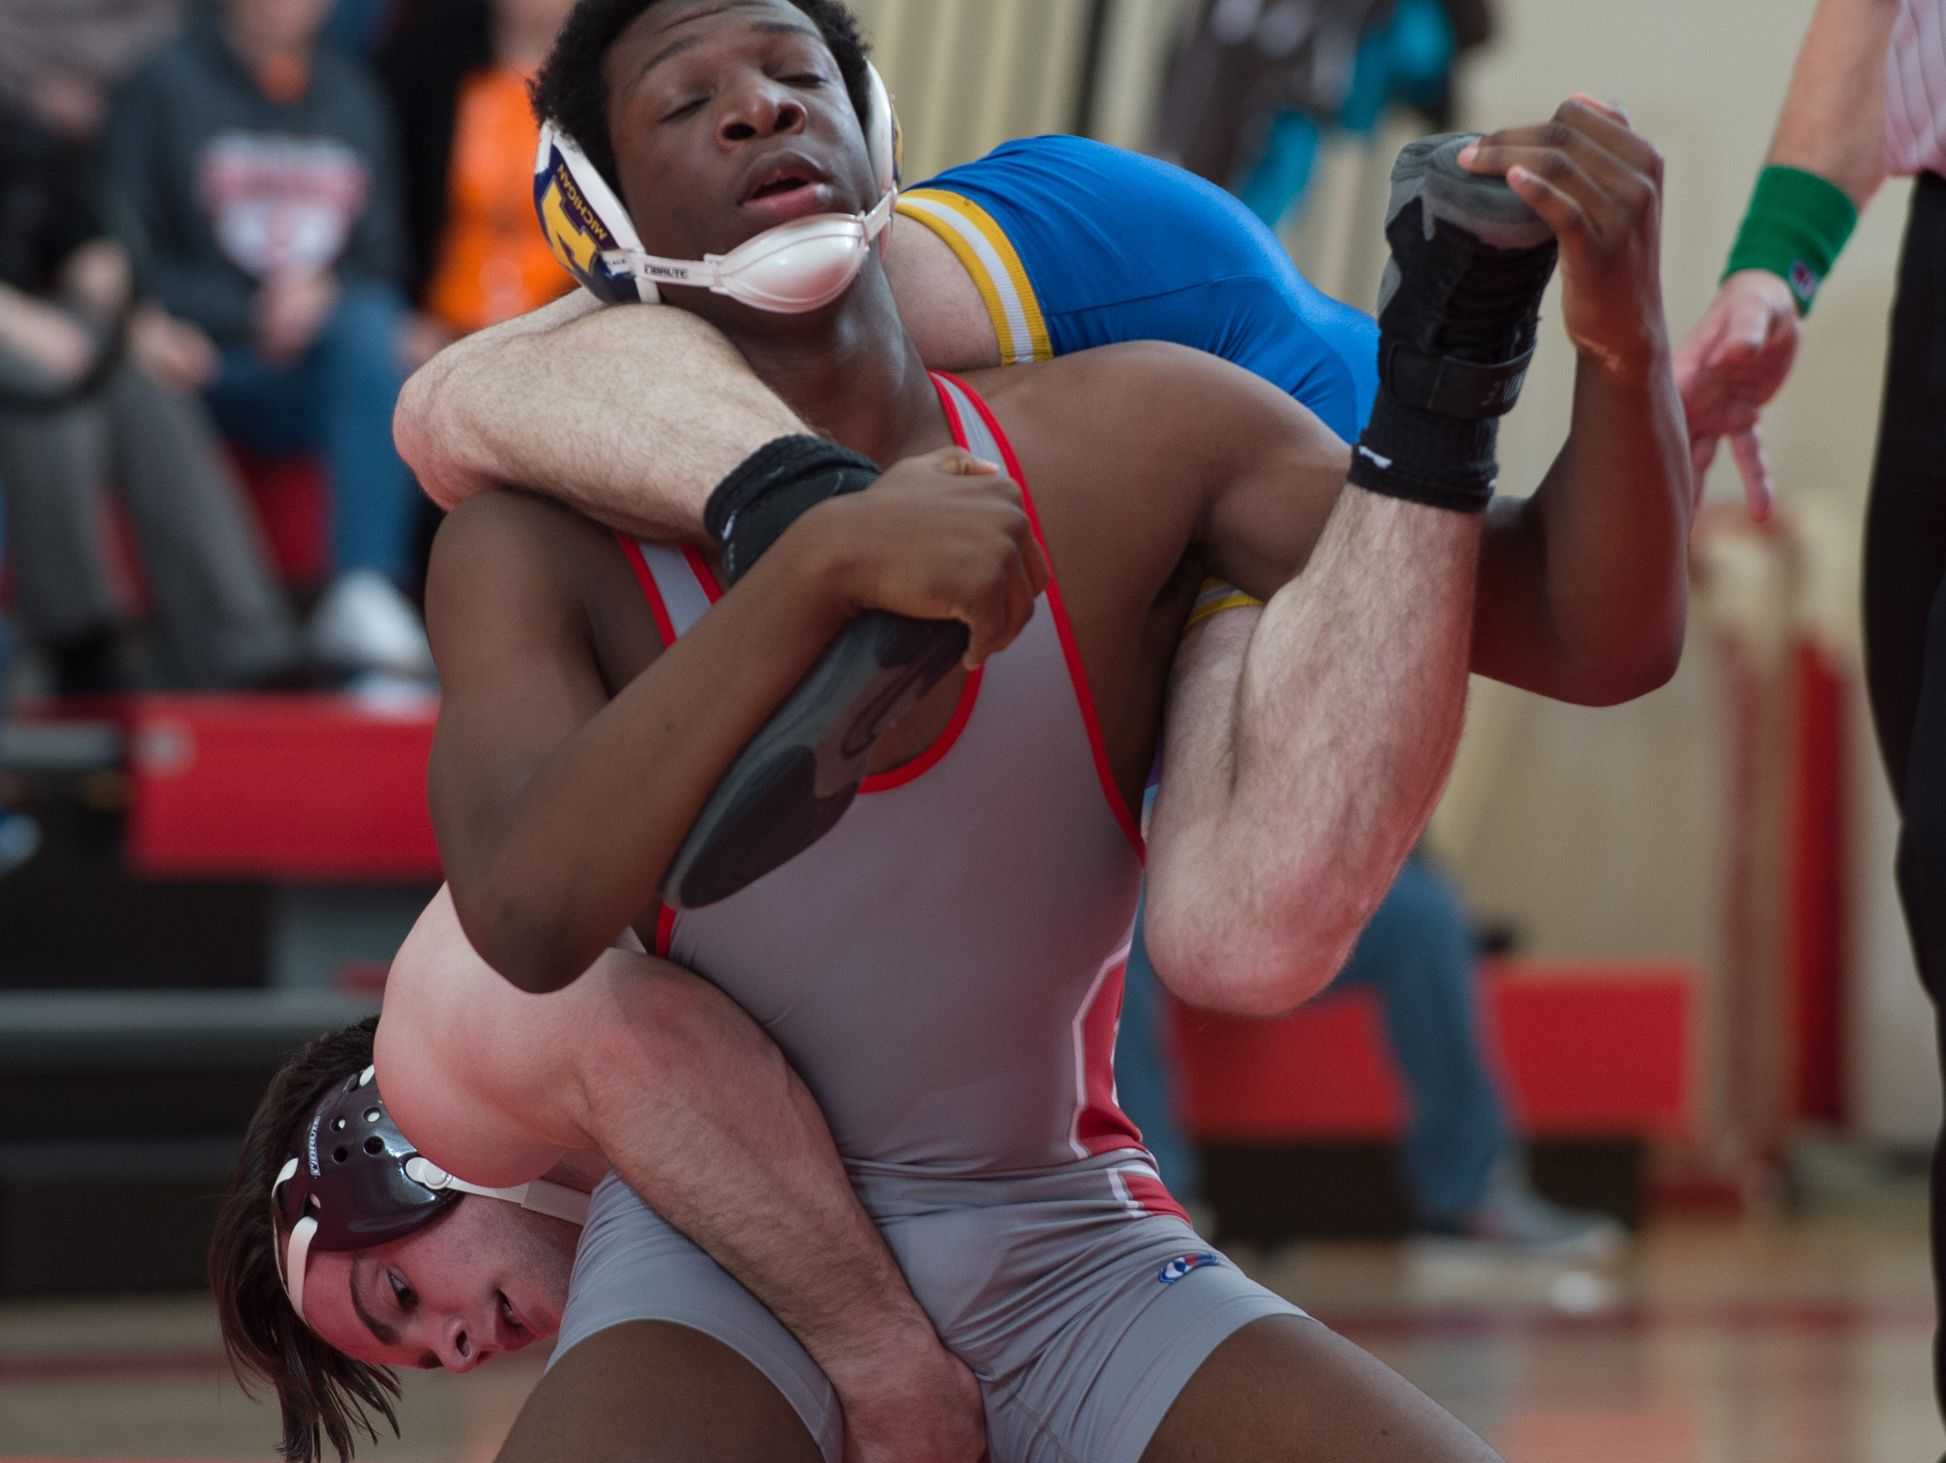 Sussex Central's Blake Chambers holds on to the back of Smyrna's Masen Wilson in the 170 pound match at Smyrna High School. Smyrna defeated Sussex Central 39-27.